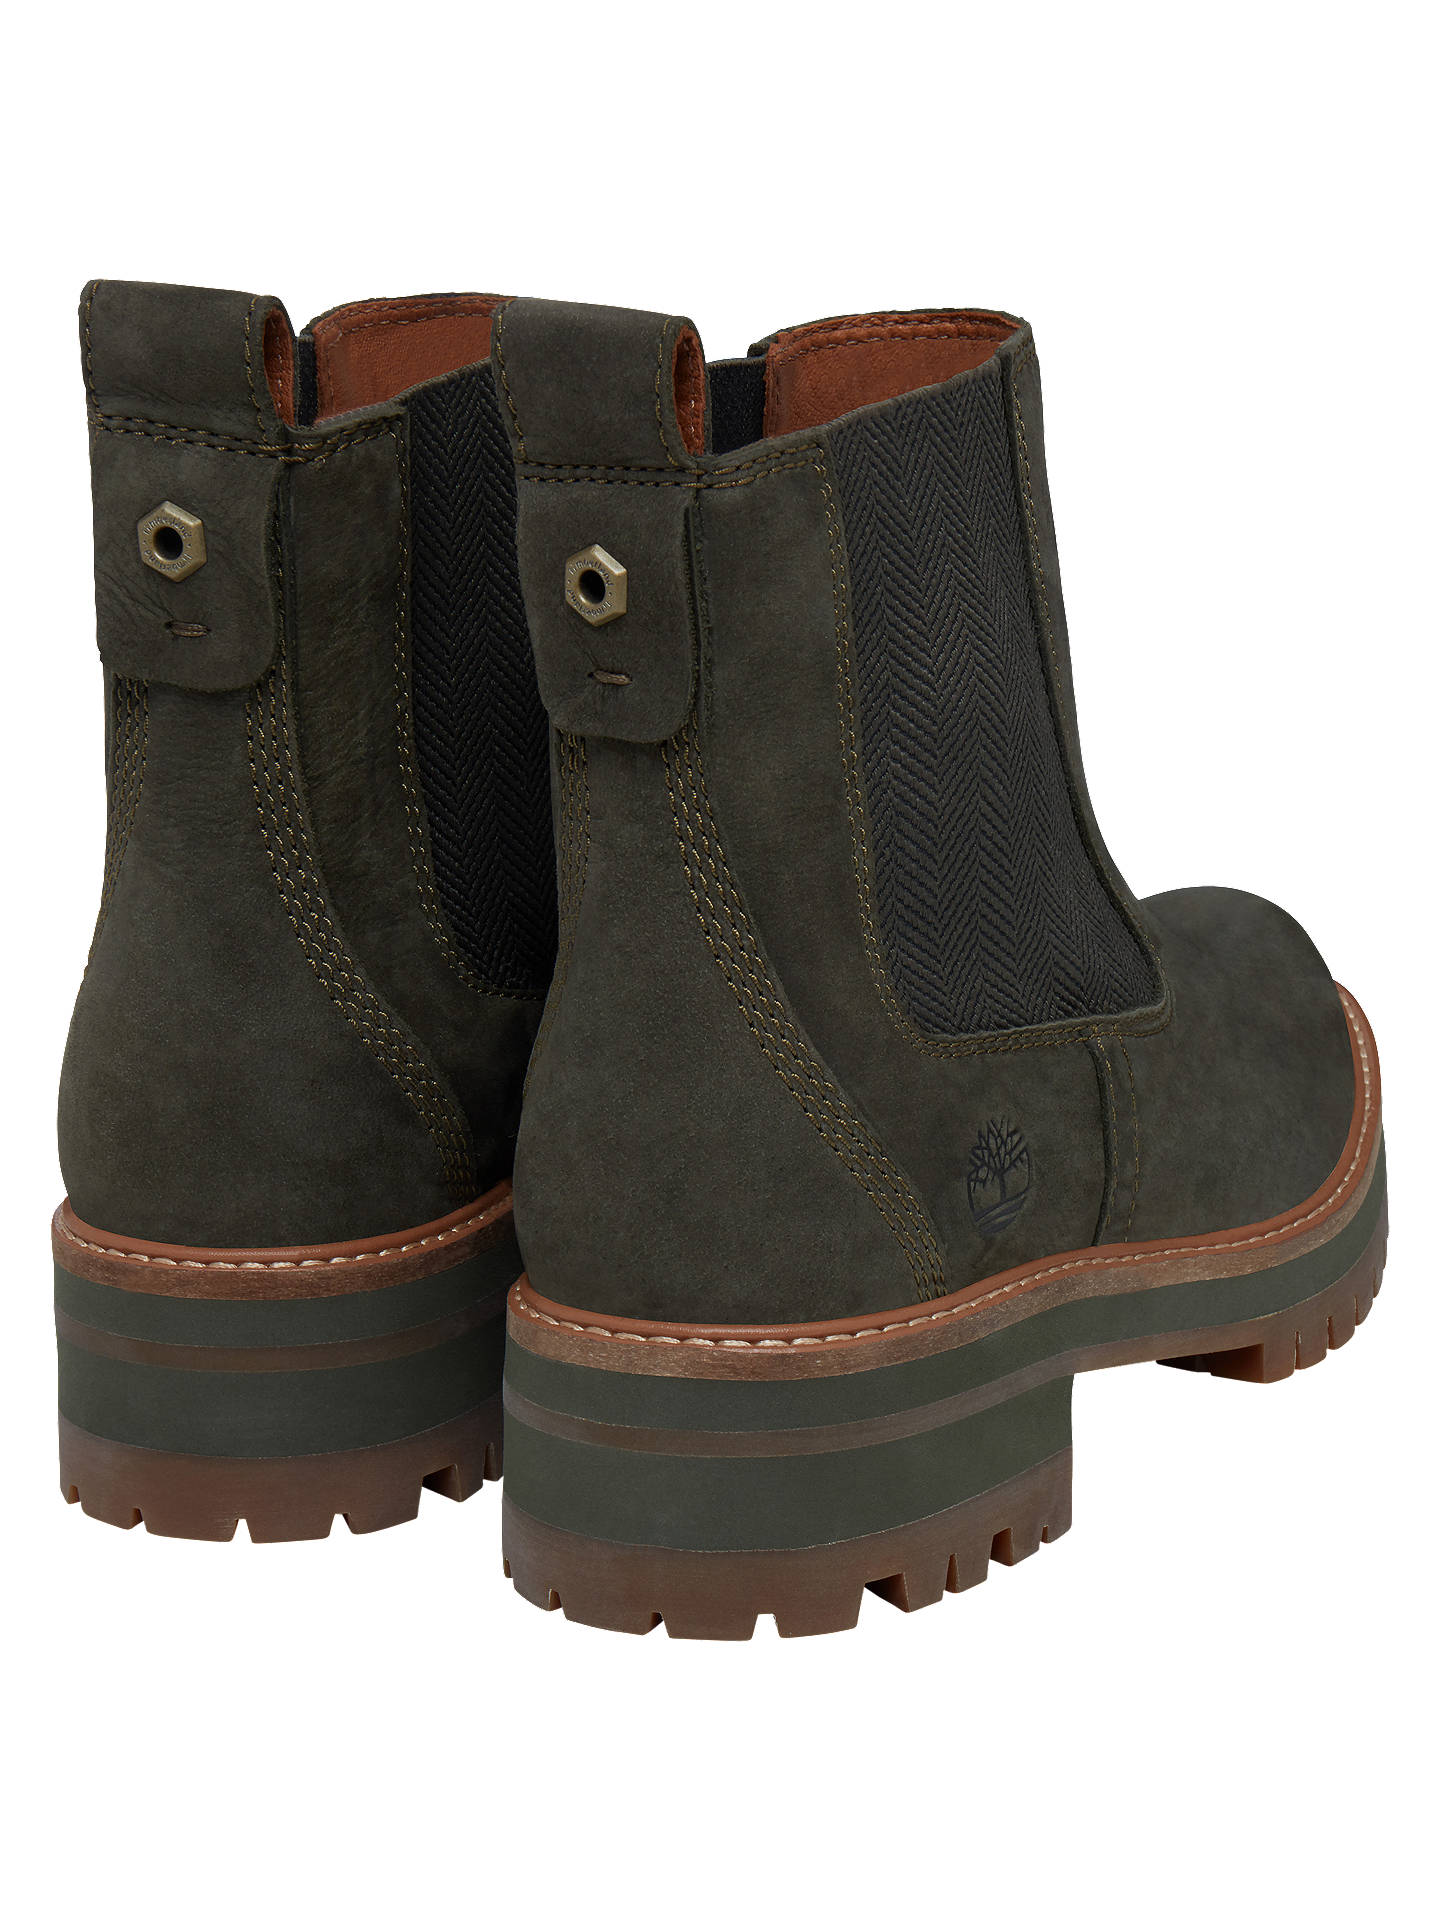 ed04d410476d4 ... Buy Timberland Courmayeur Valley Chelsea Boots, Olive, 5 Online at  johnlewis.com ...